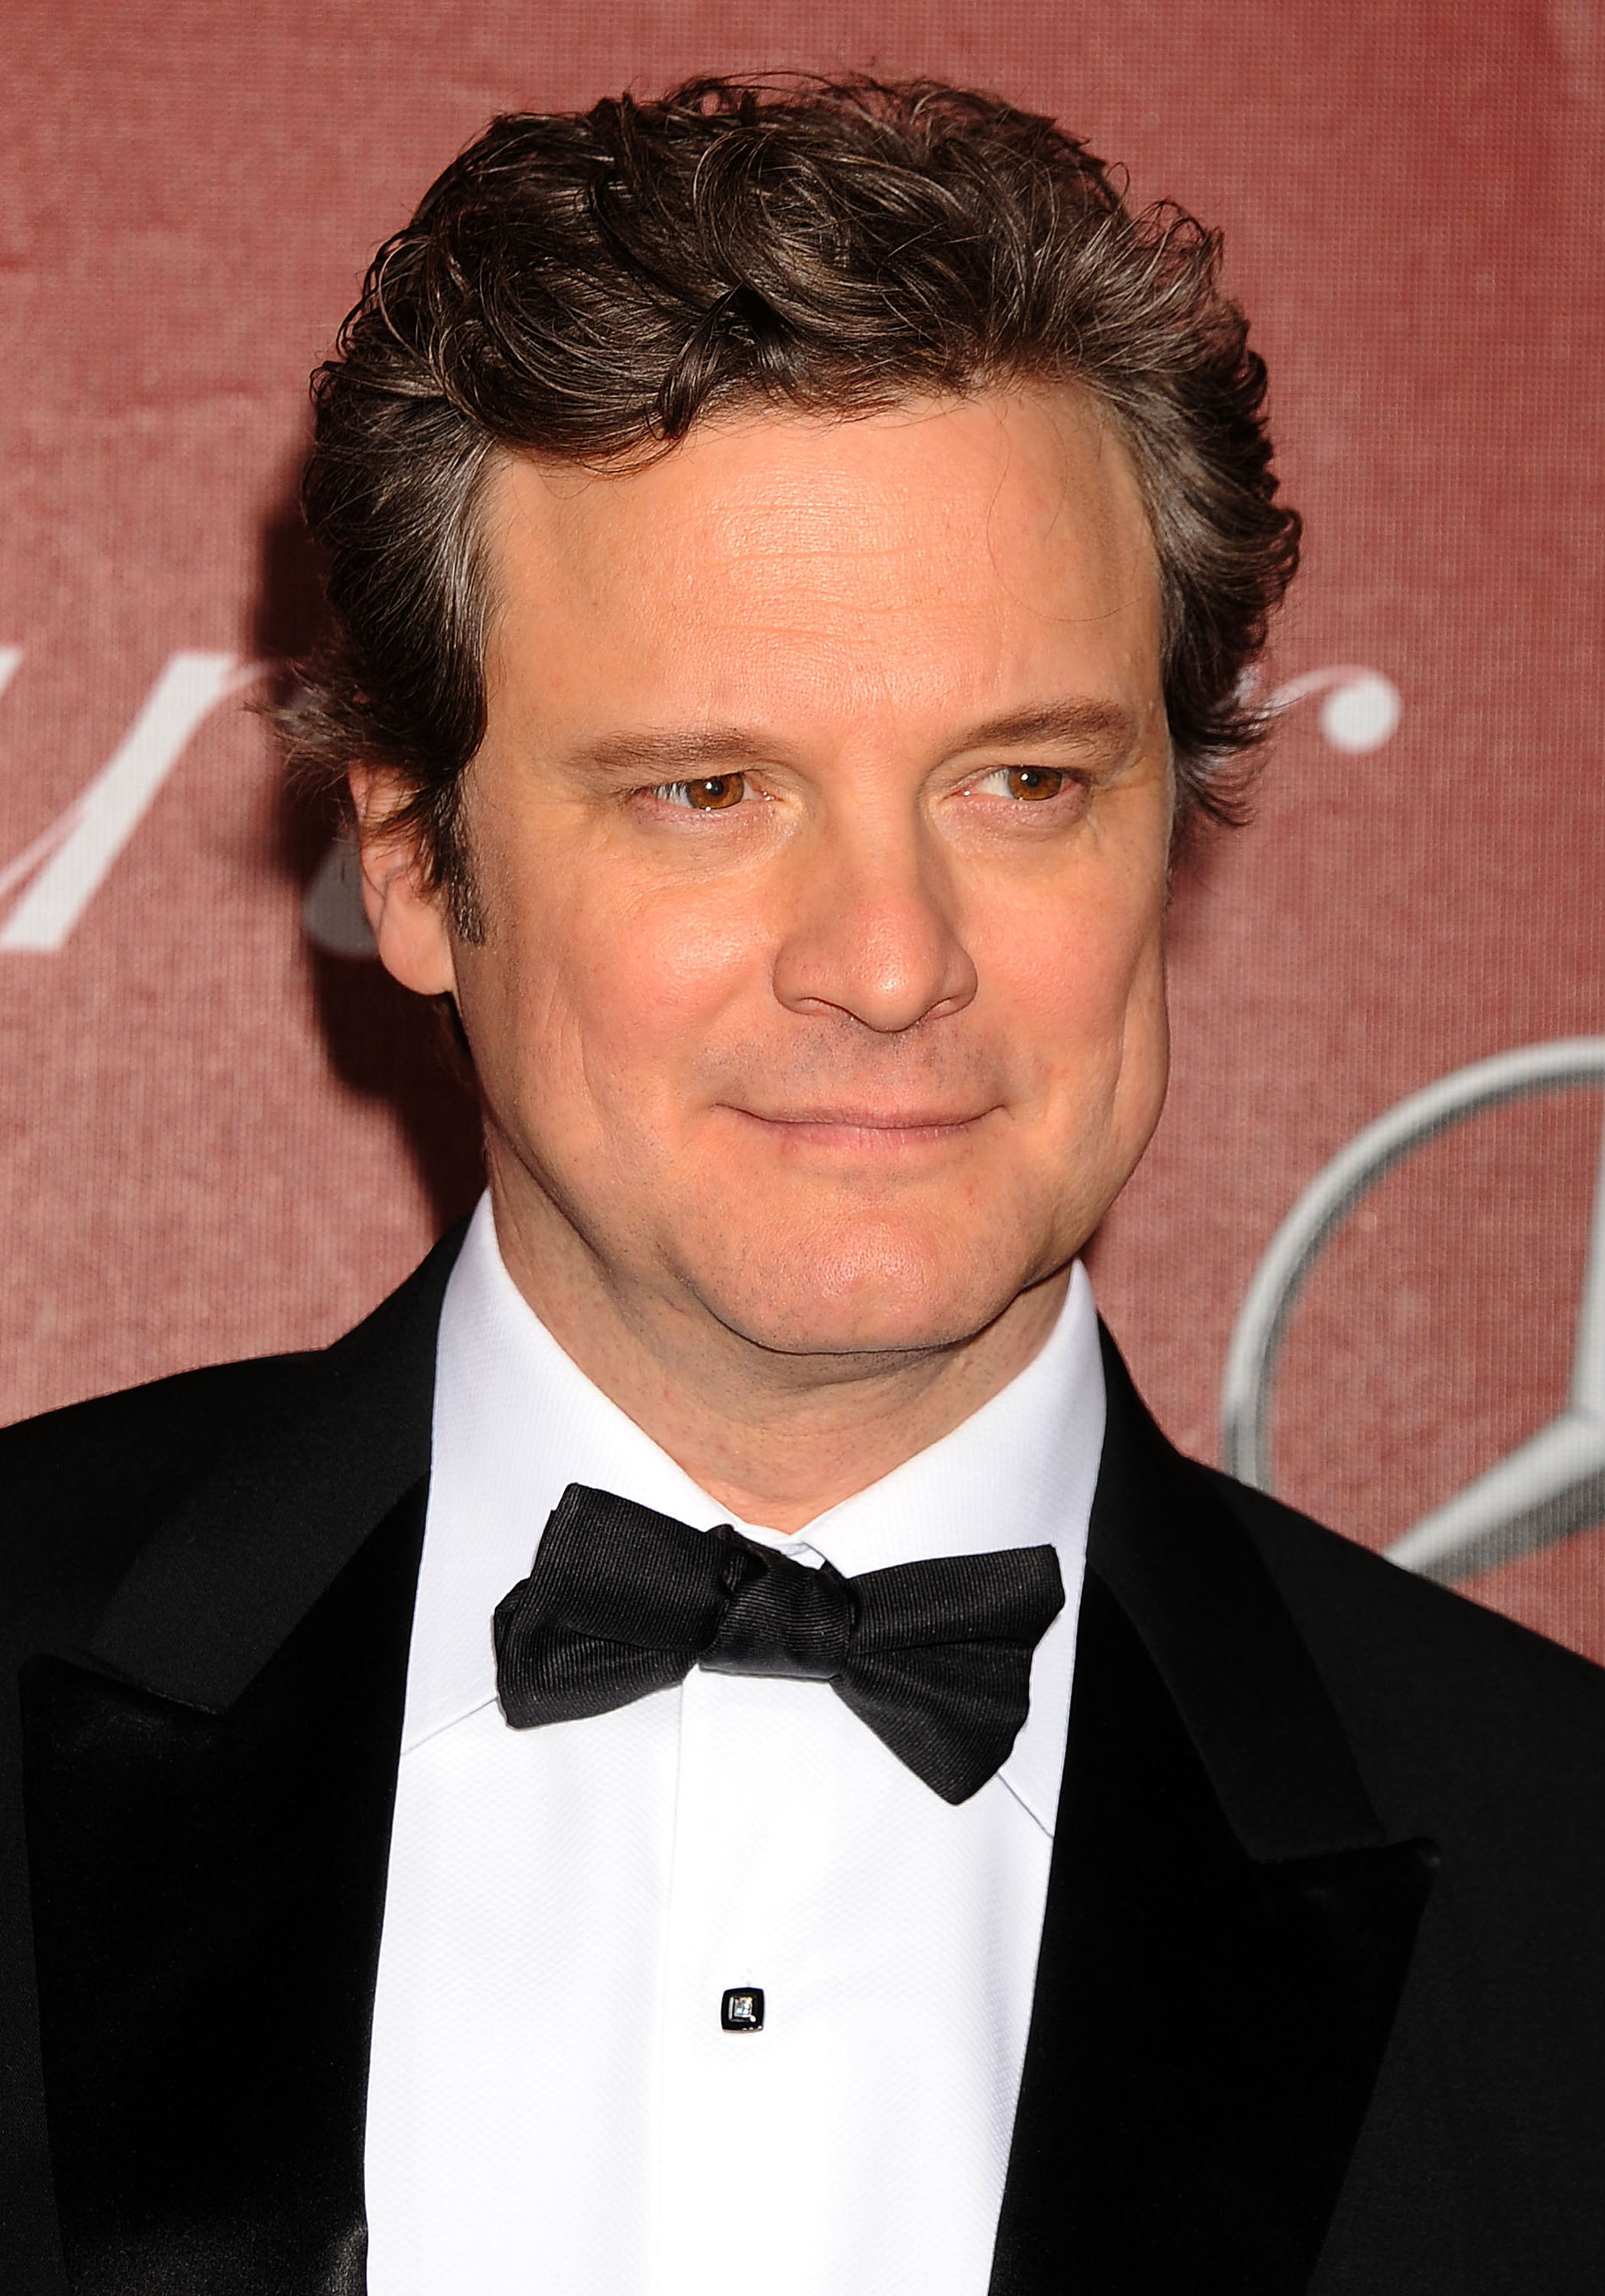 Grayshott, Hampshire, England, UK, 1960-09-10, Colin Firth